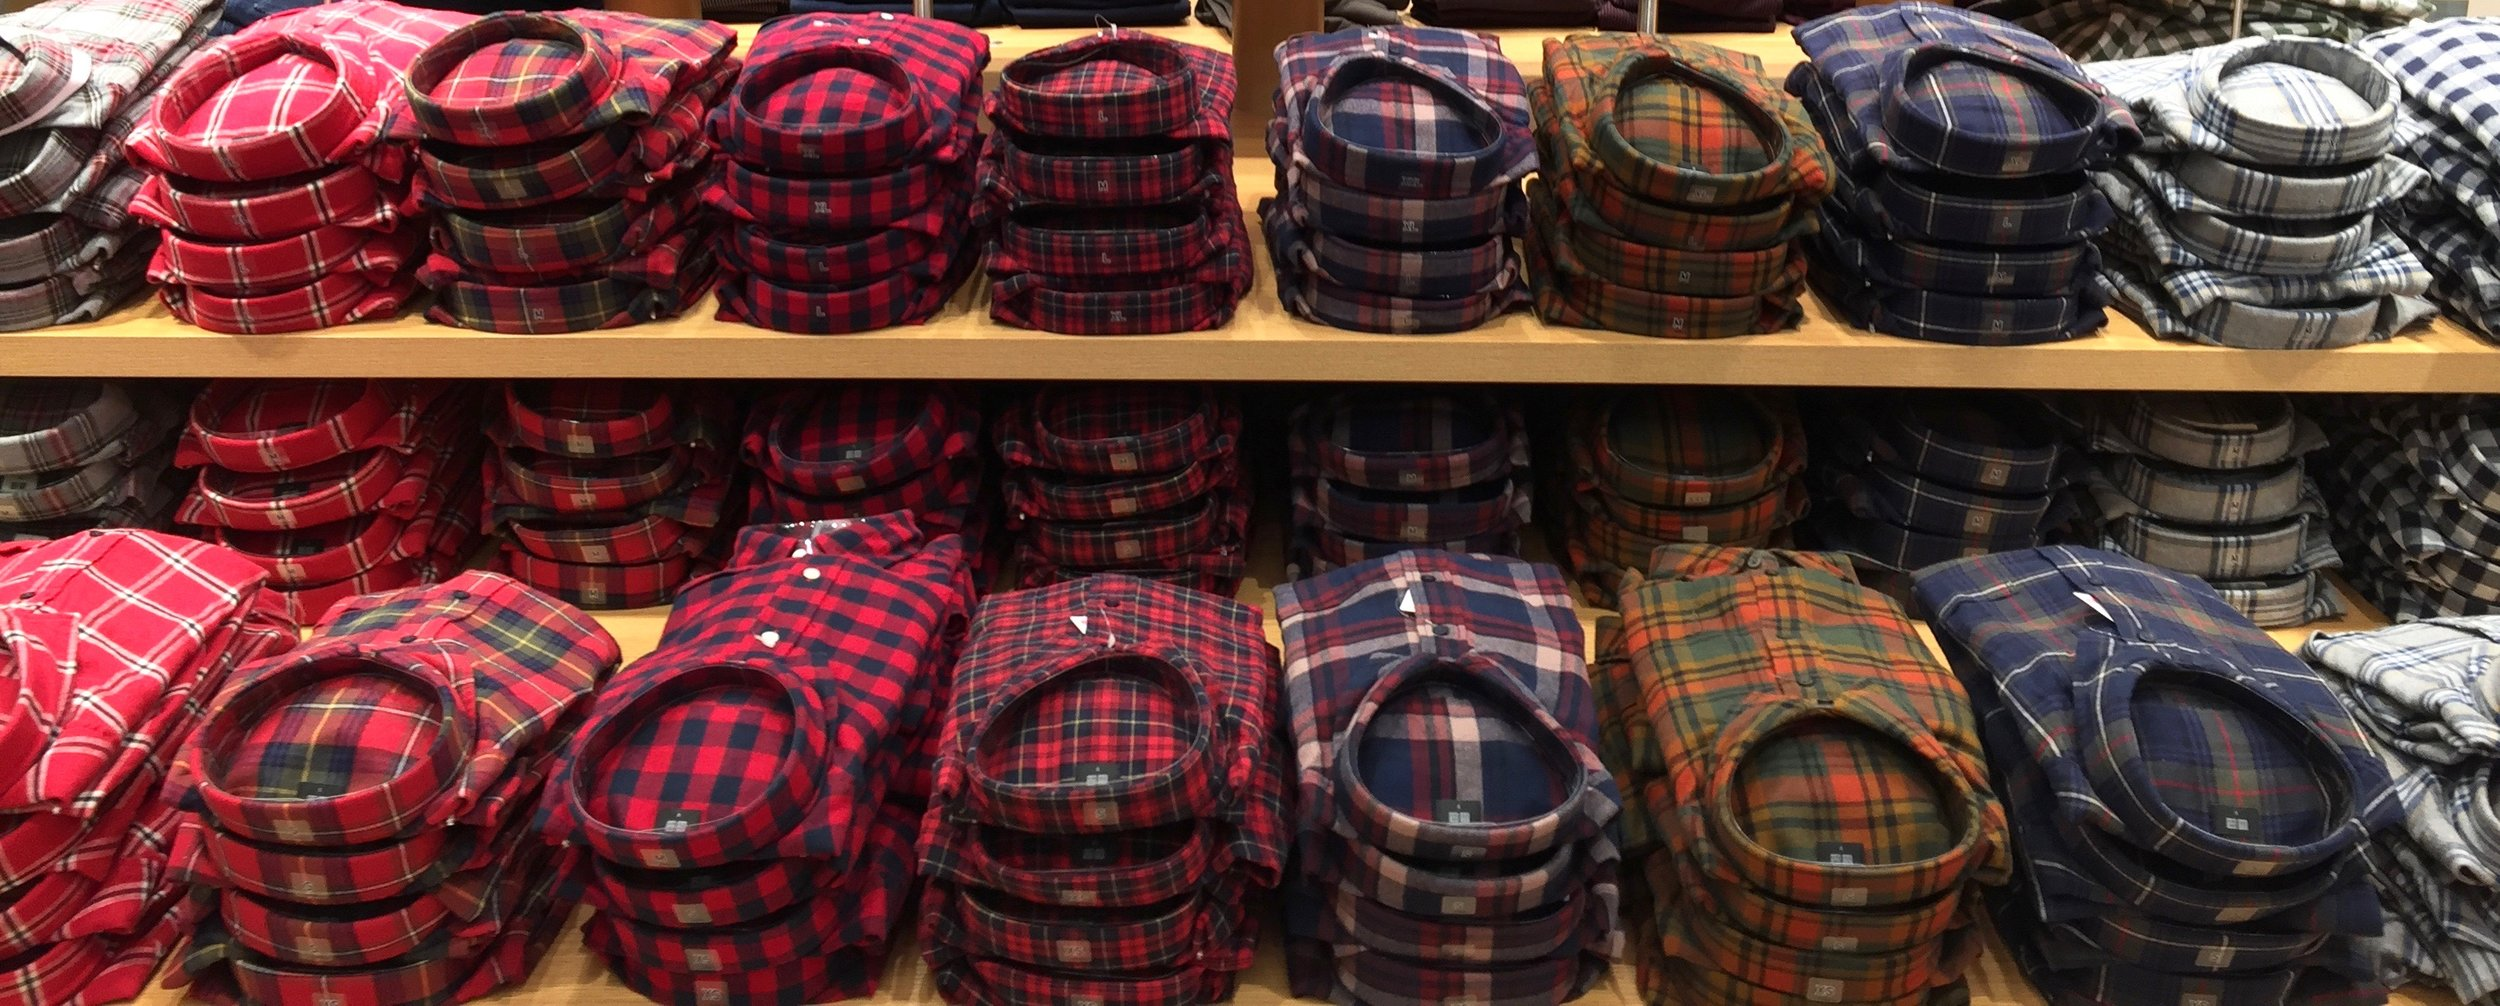 Flannel shirts are stacked by colour on the front display table.  Photo: Devon Johnson